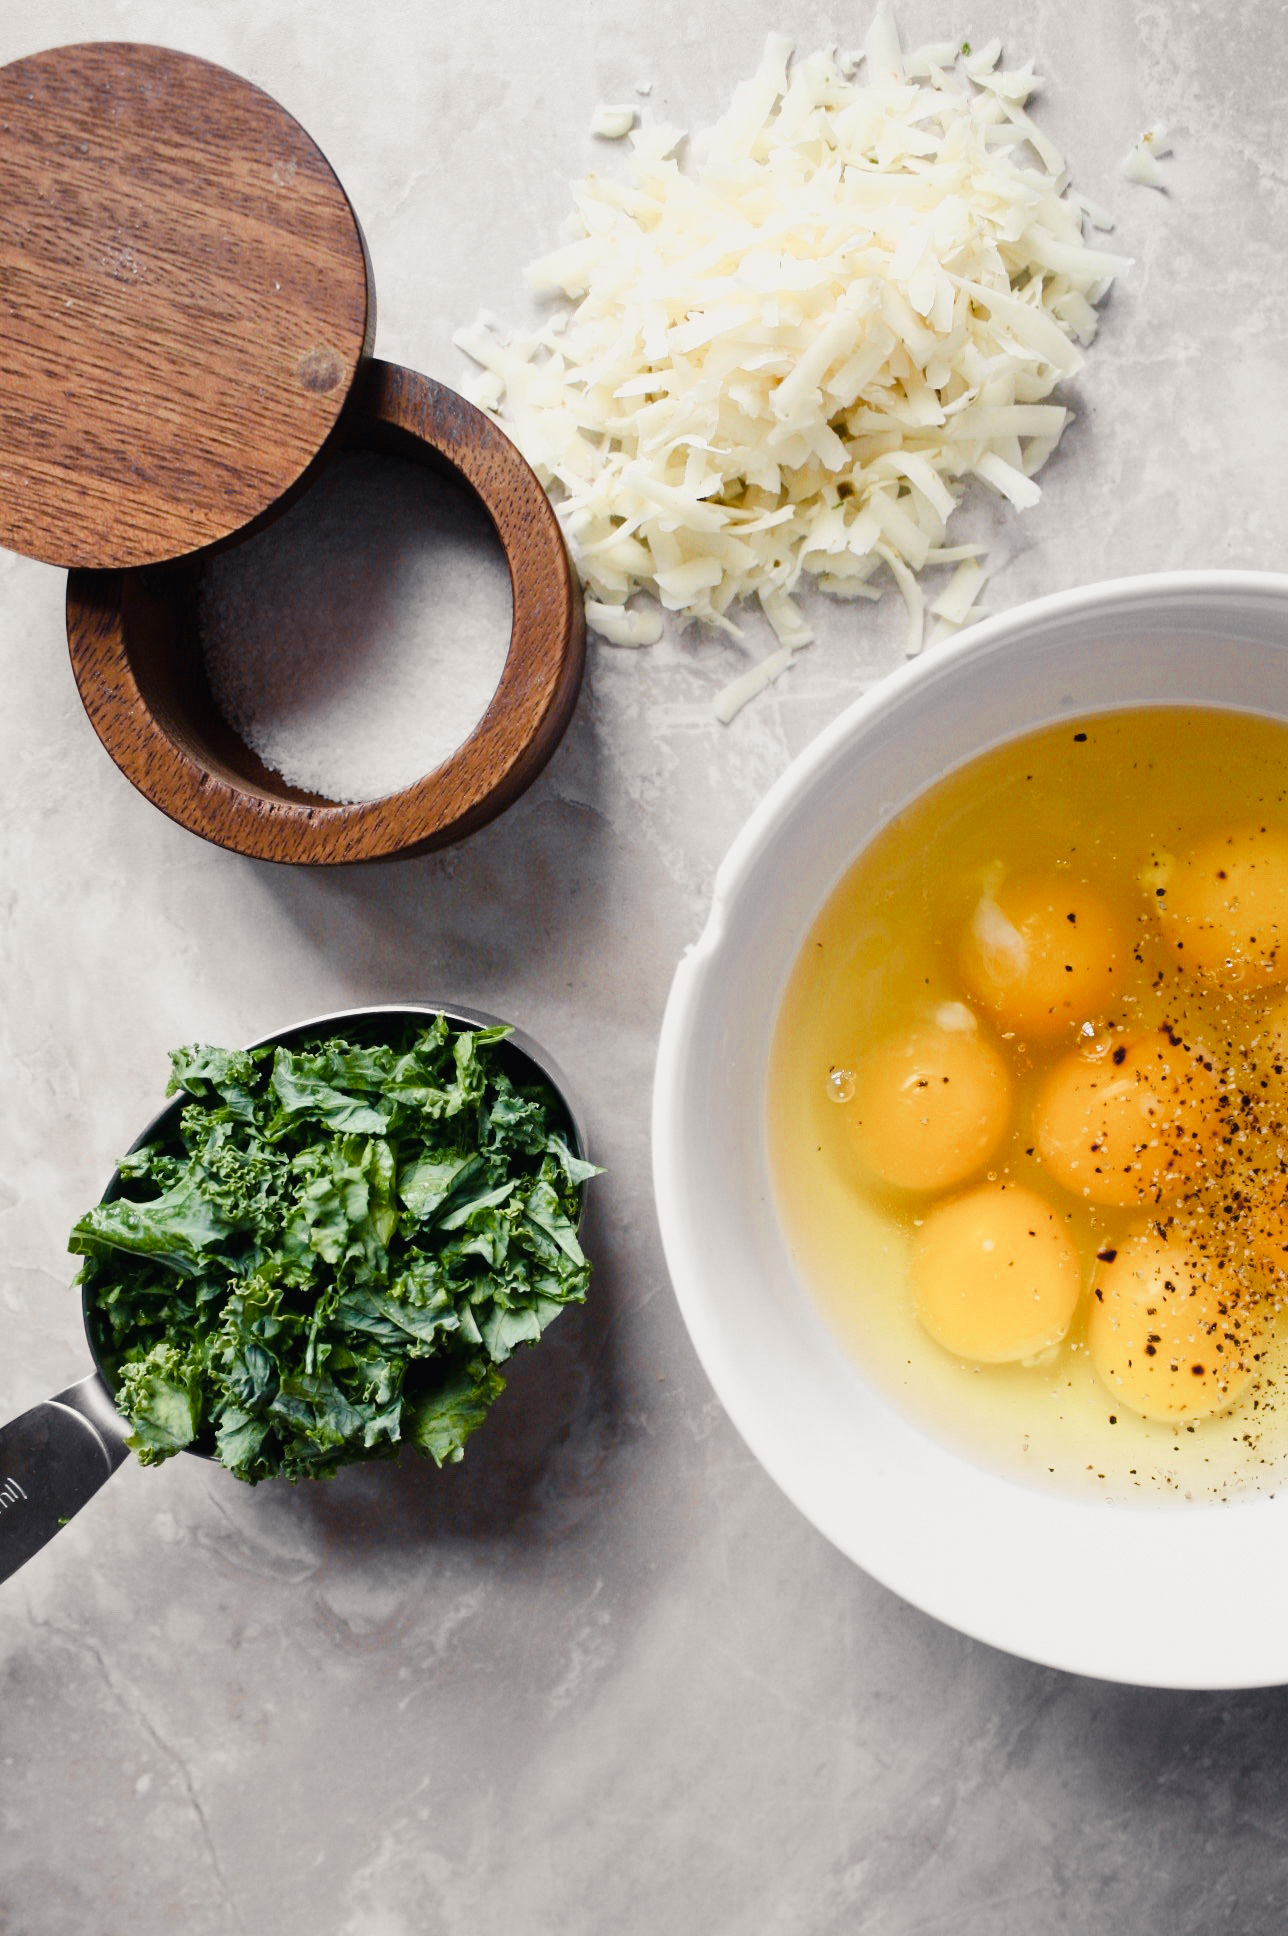 Overhead photograph of a bowl of eggs, shredded cheese and fresh kale